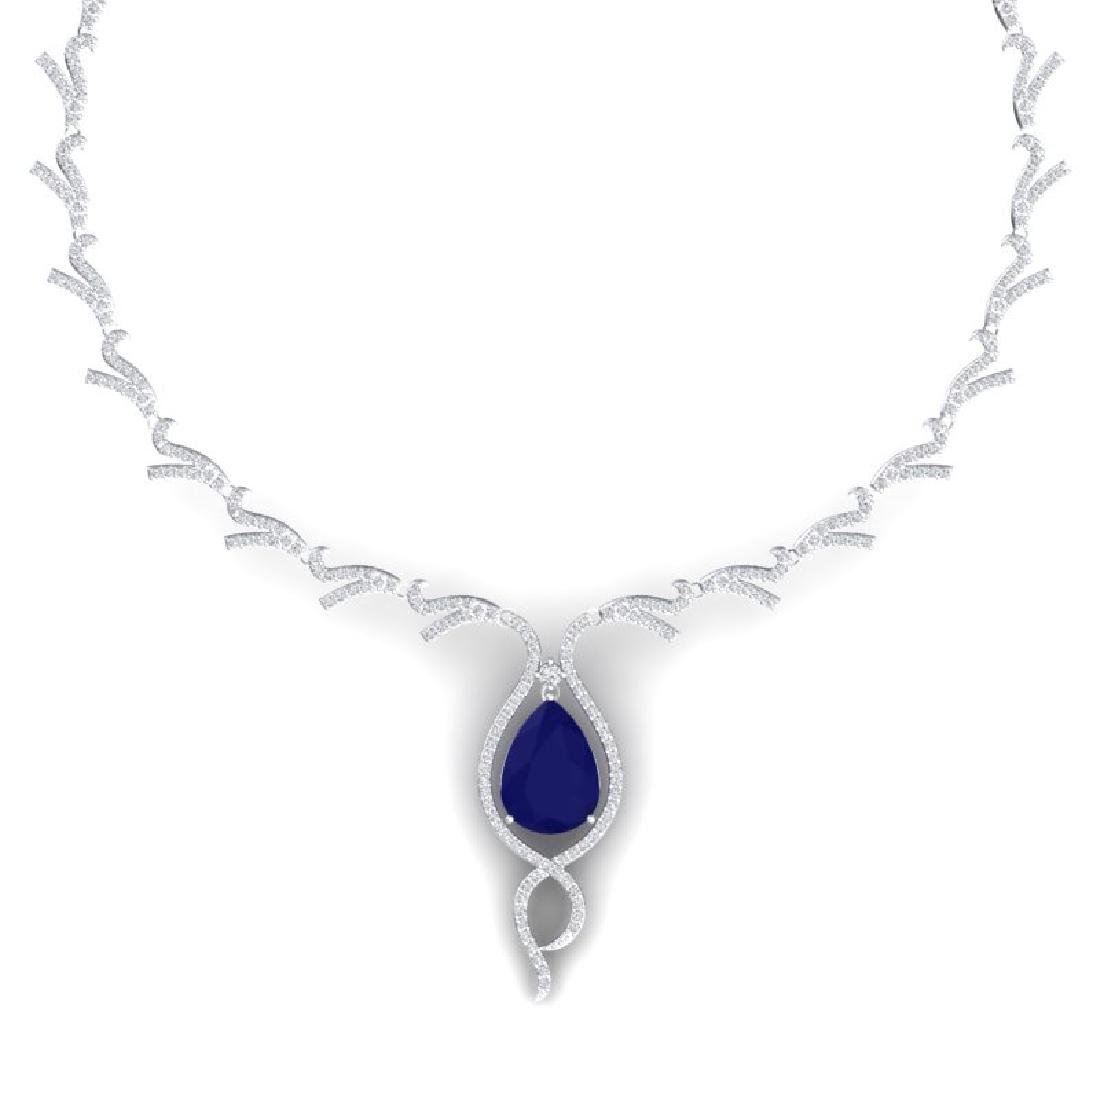 23.43 CTW Royalty Sapphire & VS Diamond Necklace 18K